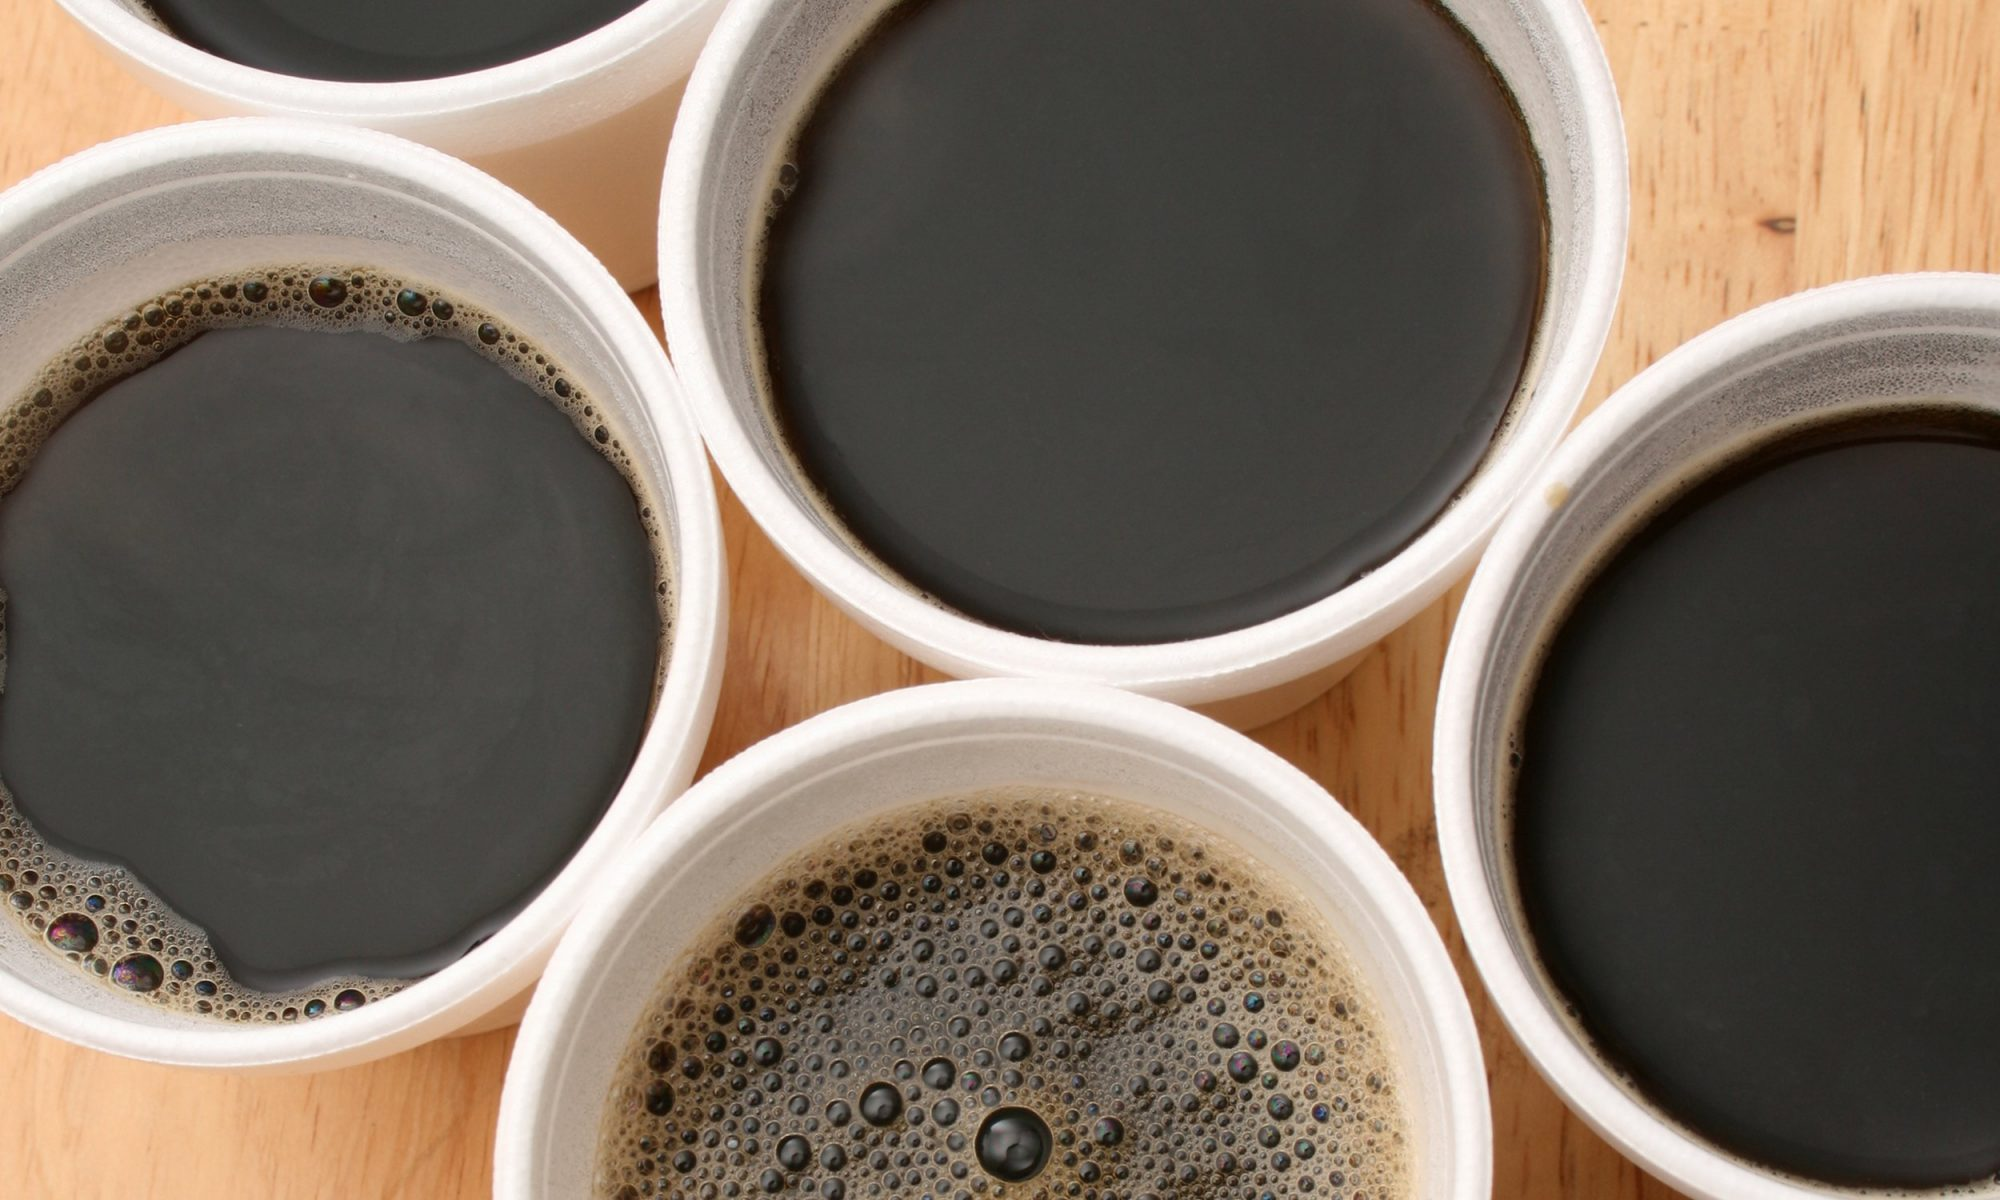 EC: 7-Eleven Has the Most Caffeine Per Cup of Coffee